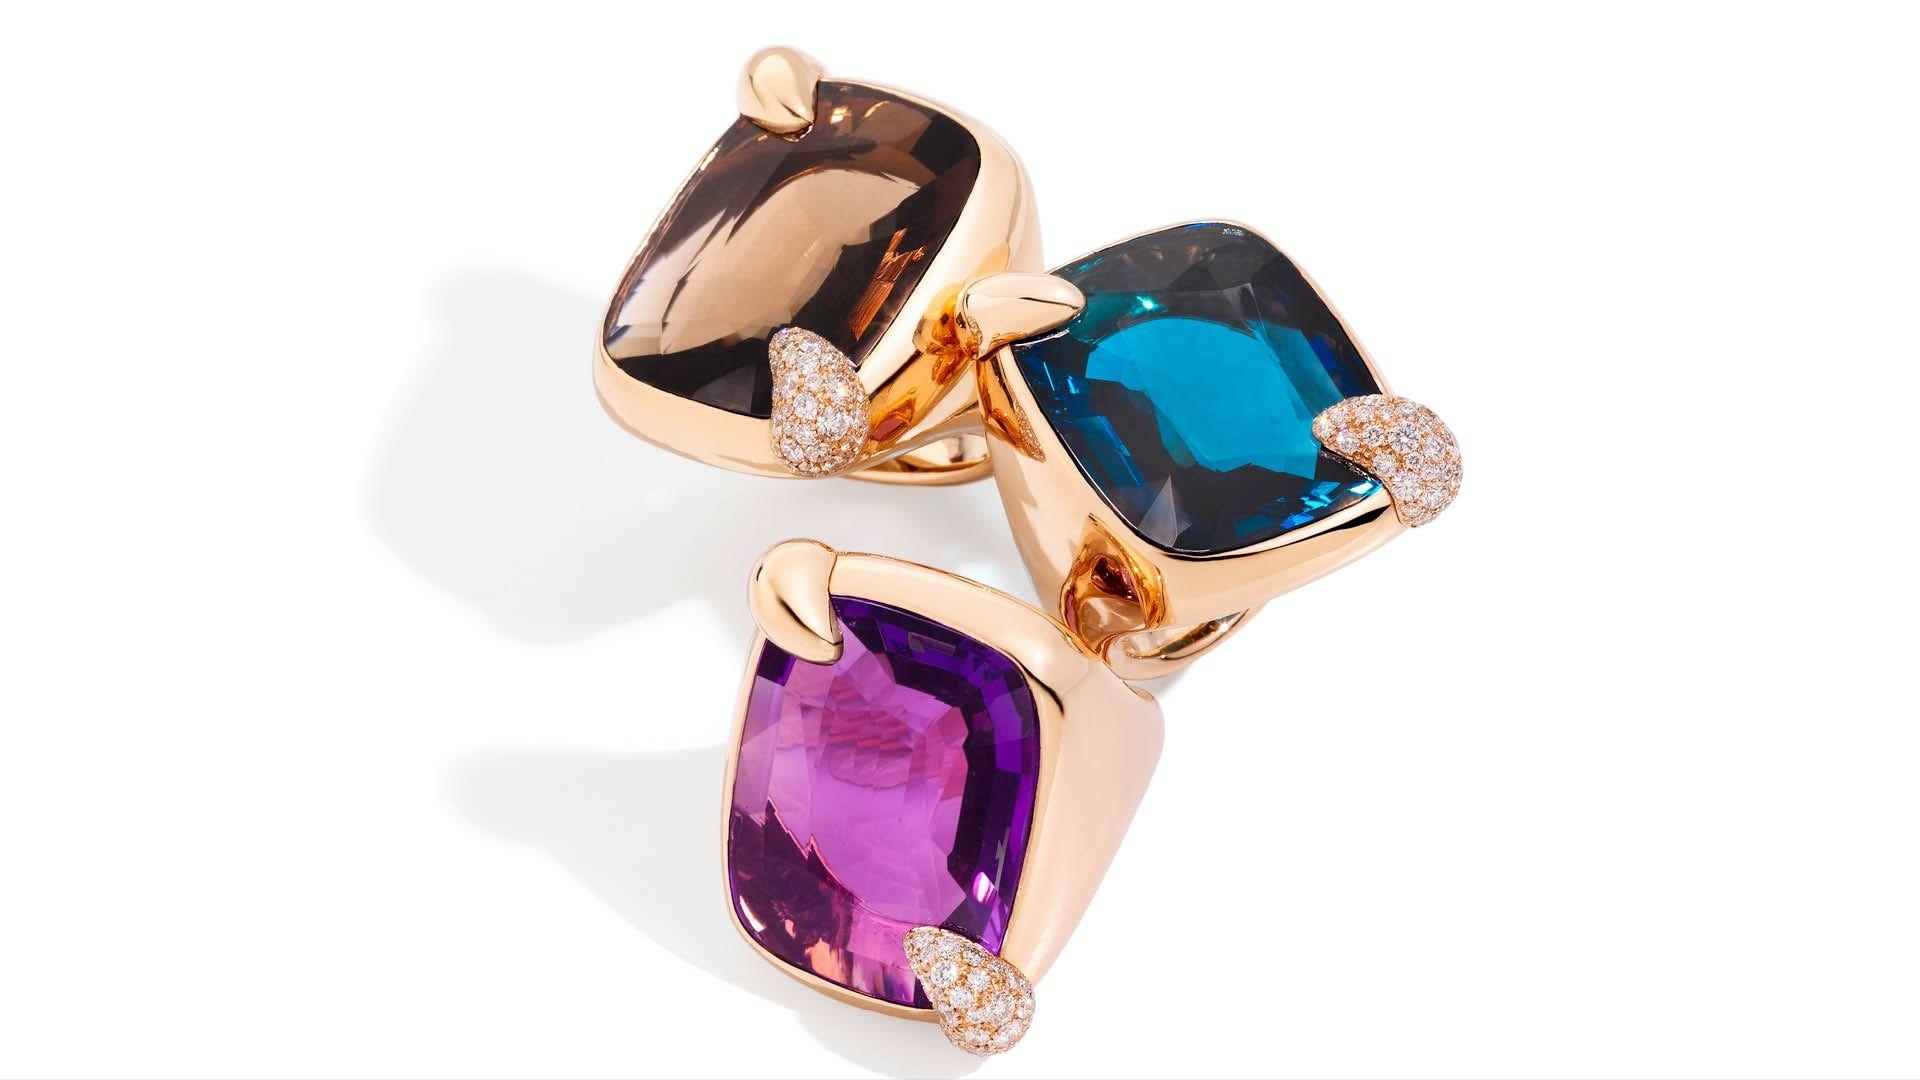 Exclusive: Pomellato CEO Sabina Belli Talks Gemstone And Jewellery Trends